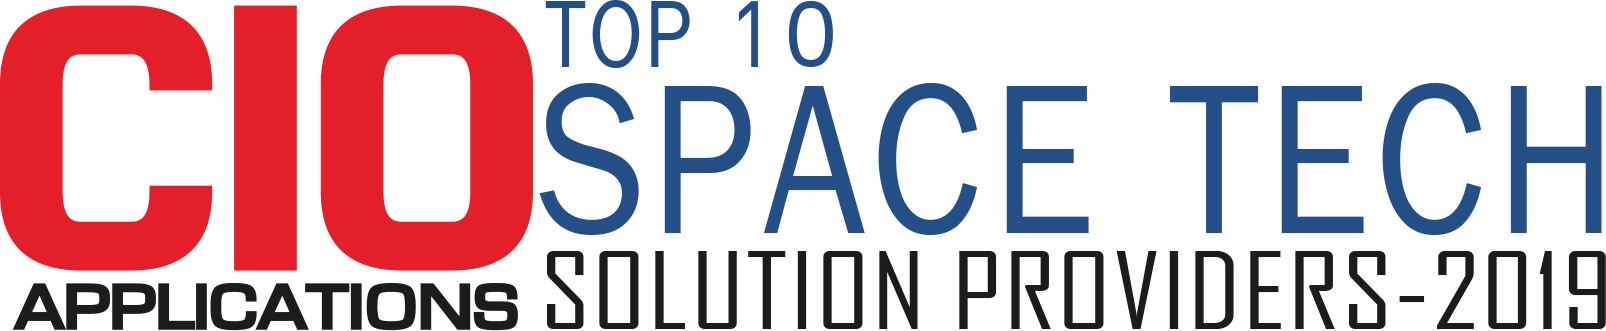 Top 10 Space Tech Solution Providers - 2019